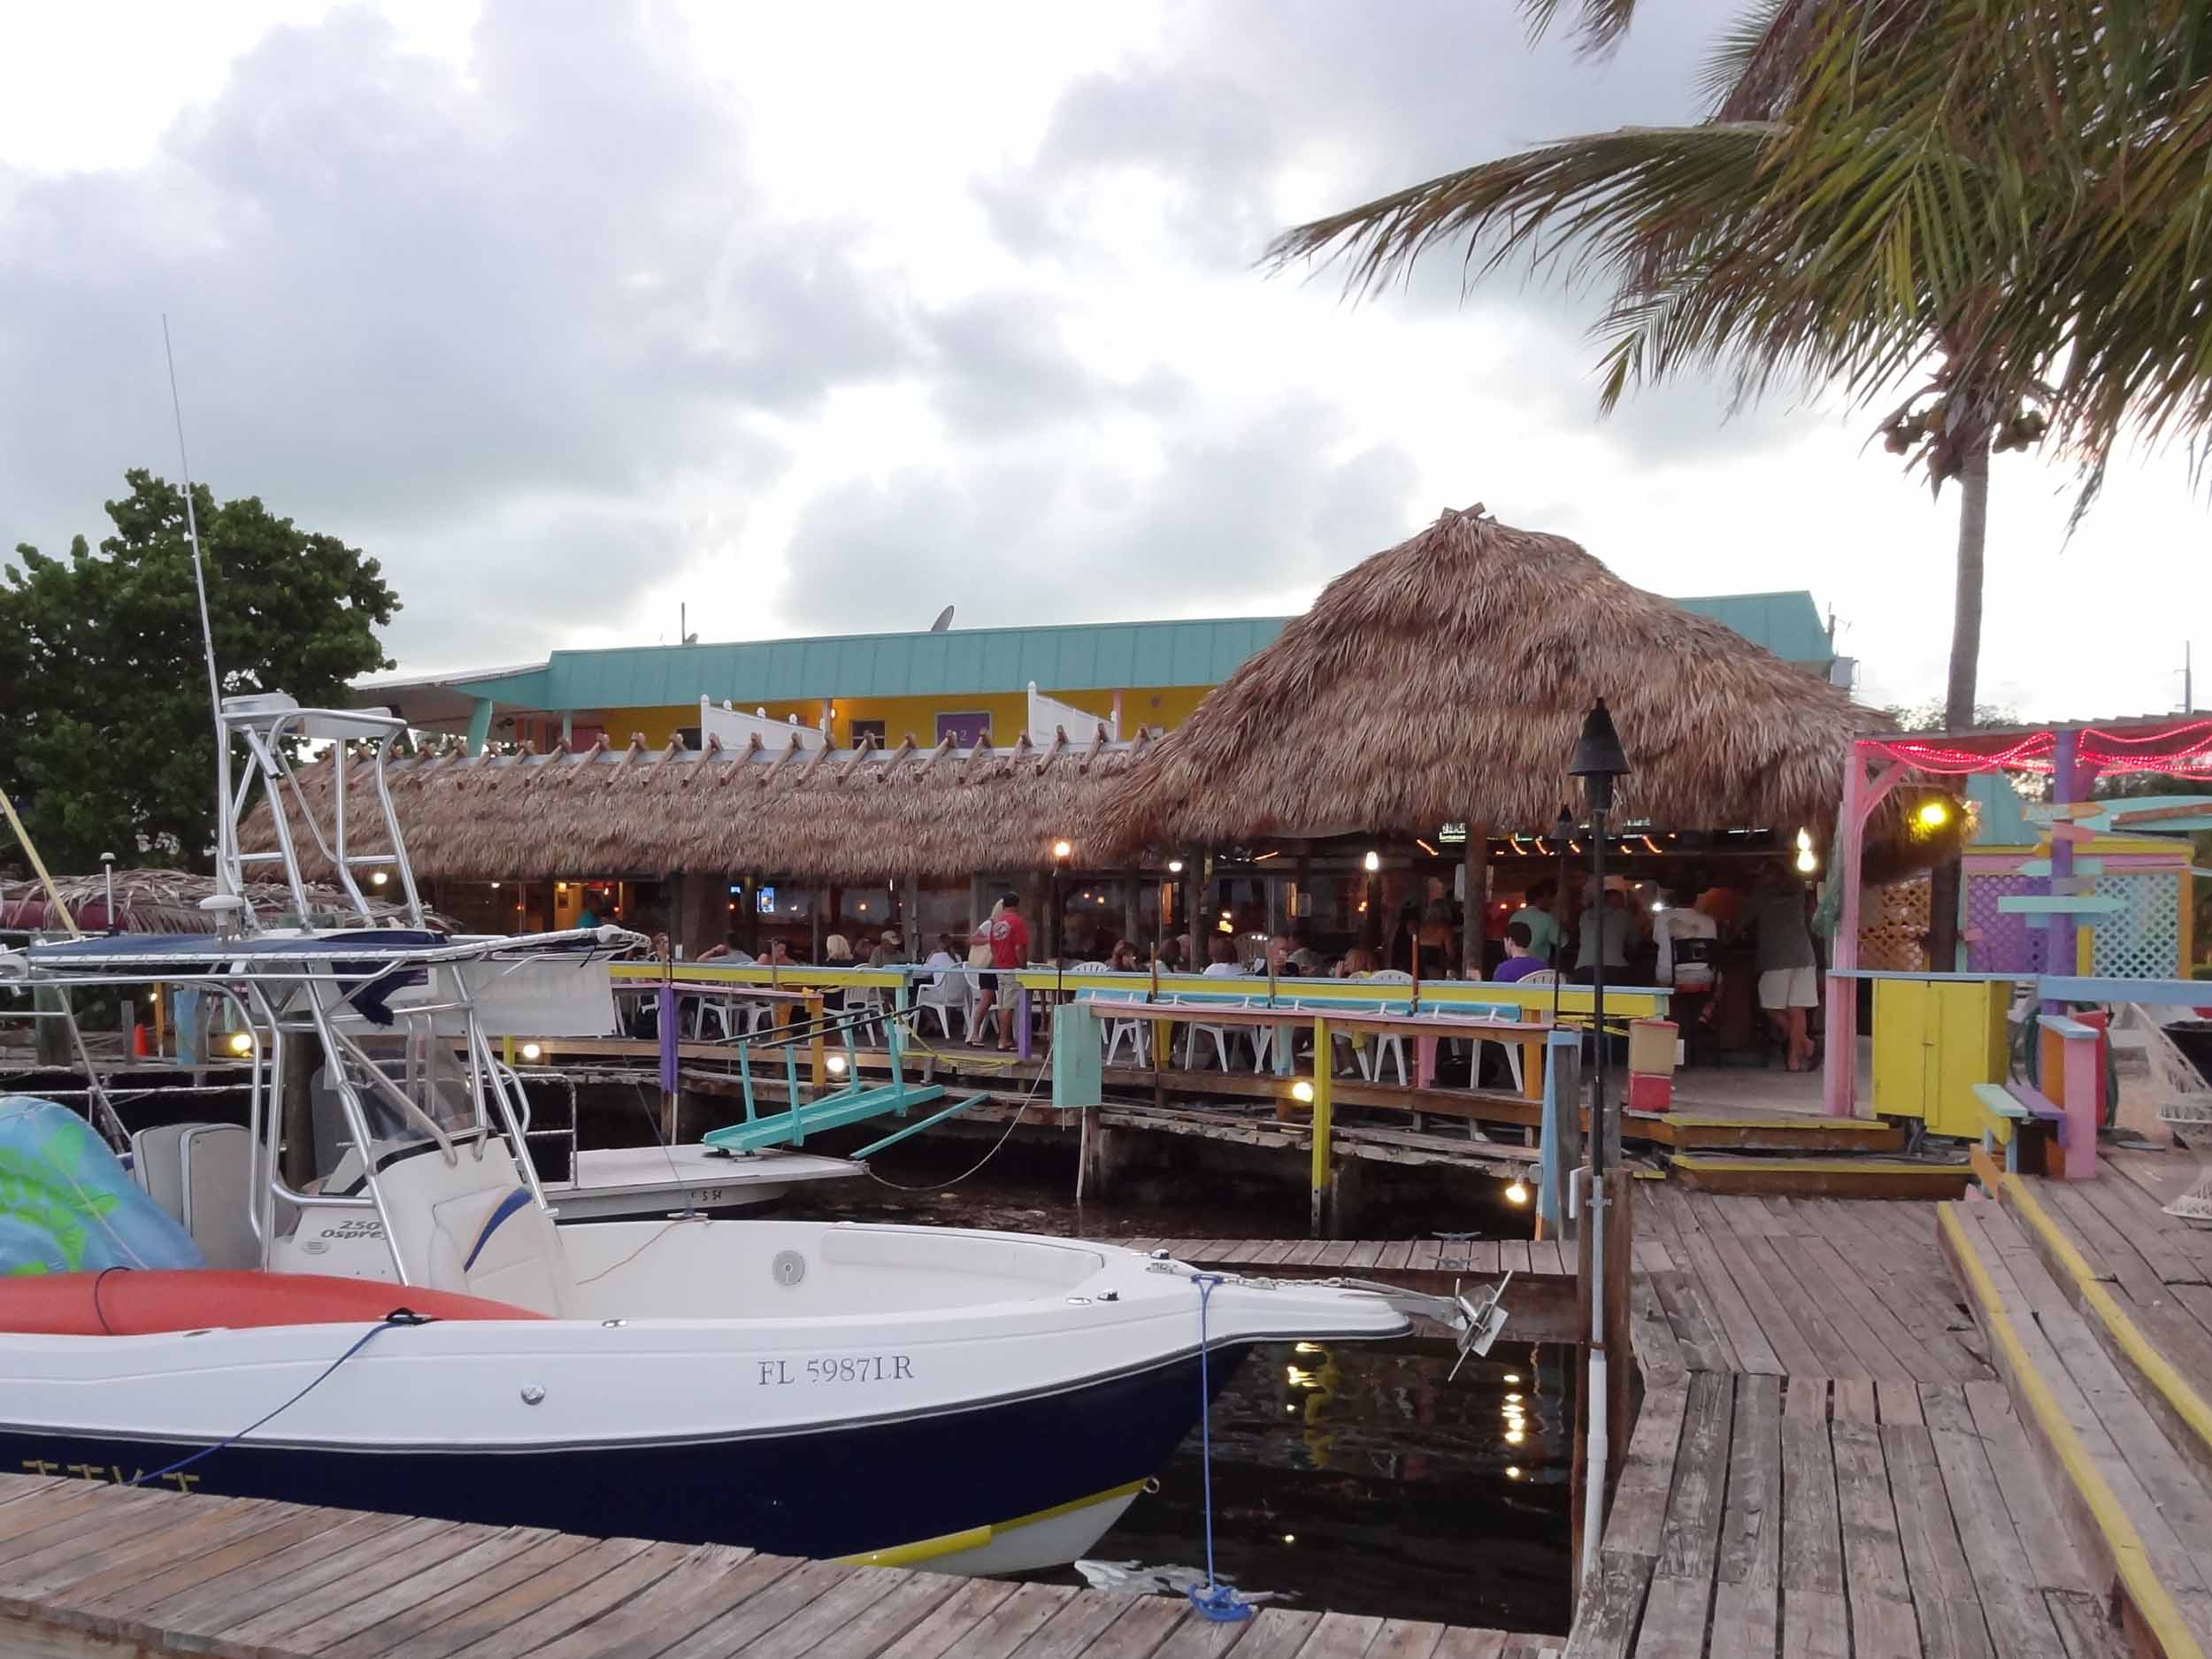 The Turtle club at snappers waterfront restaurant